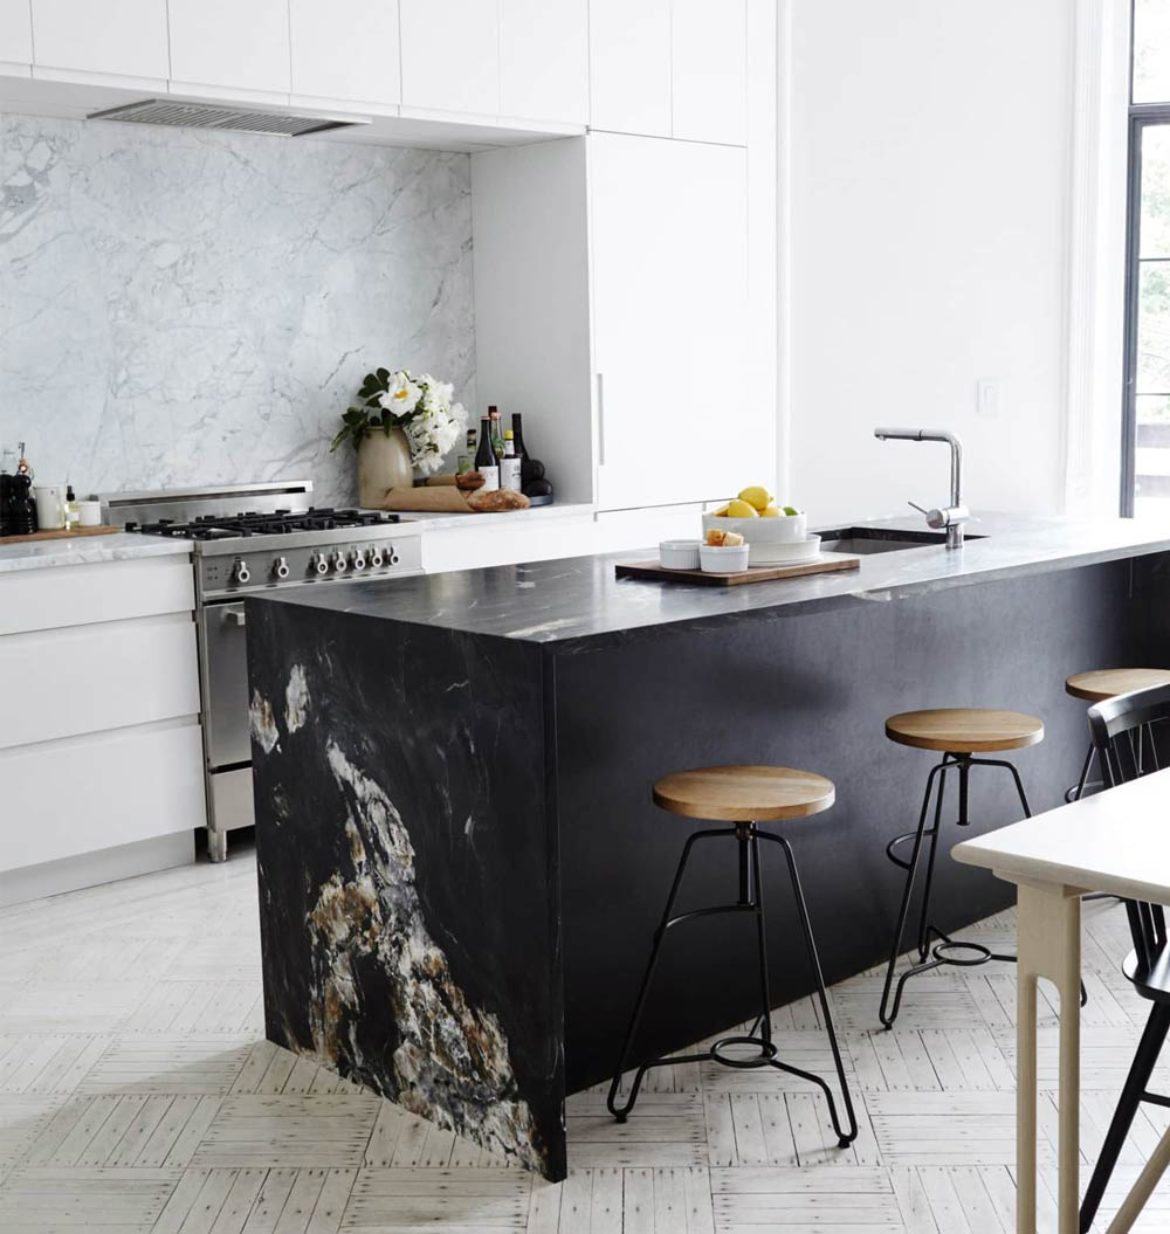 Hot Kitchen Trends According To Talie Jane Marble Talie Jane Interiors